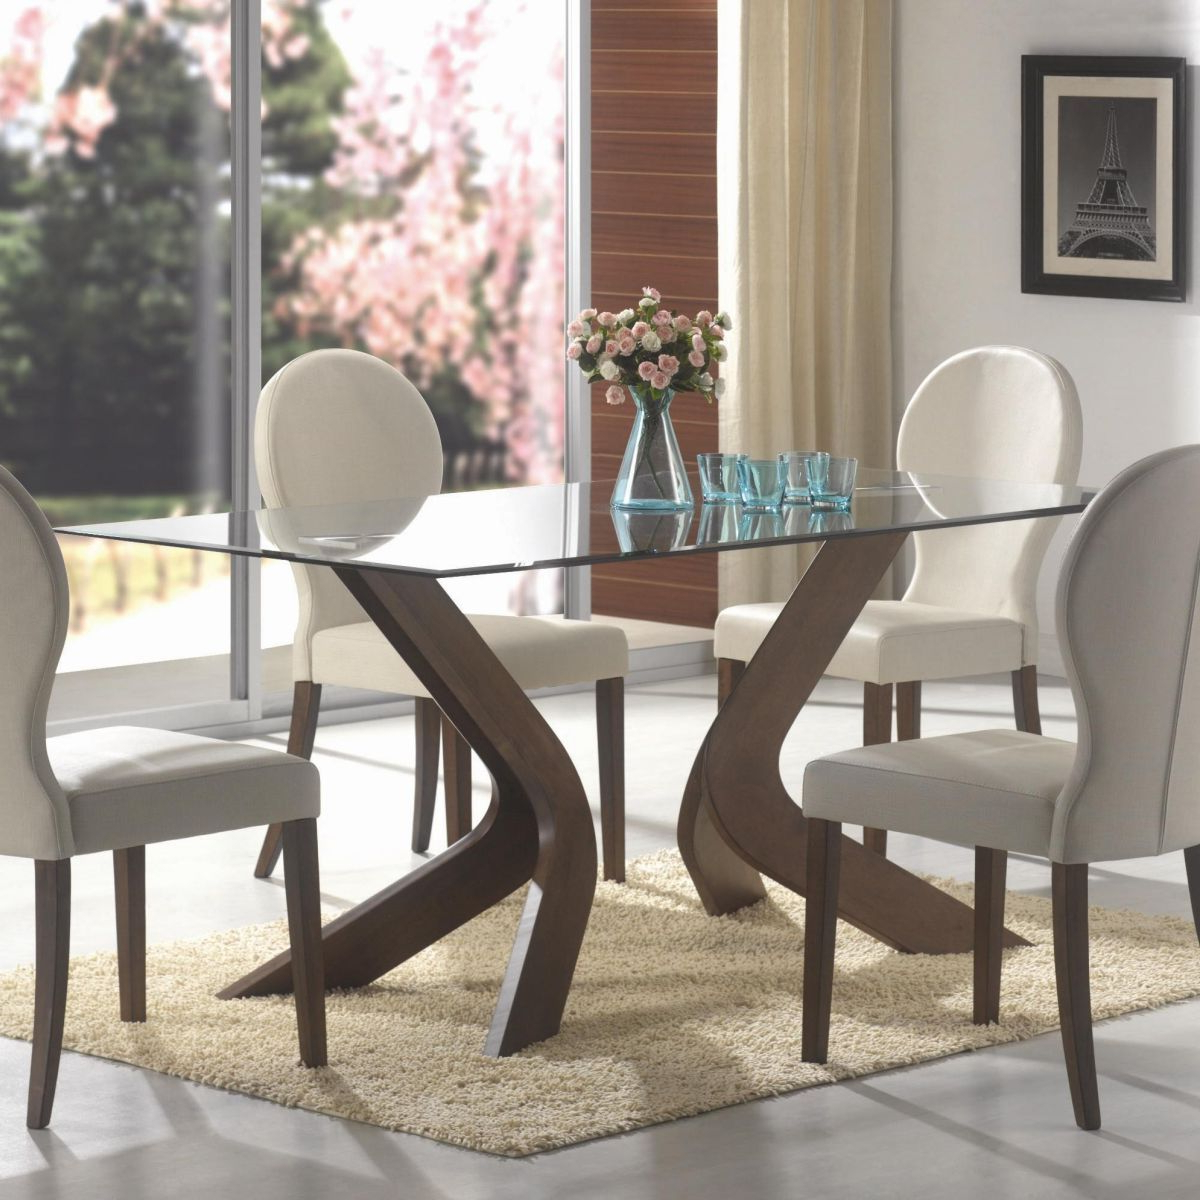 Trendy 40 Glass Dining Room Tables To Revamp With: From Rectangle Inside Wood Top Dining Tables (View 19 of 25)